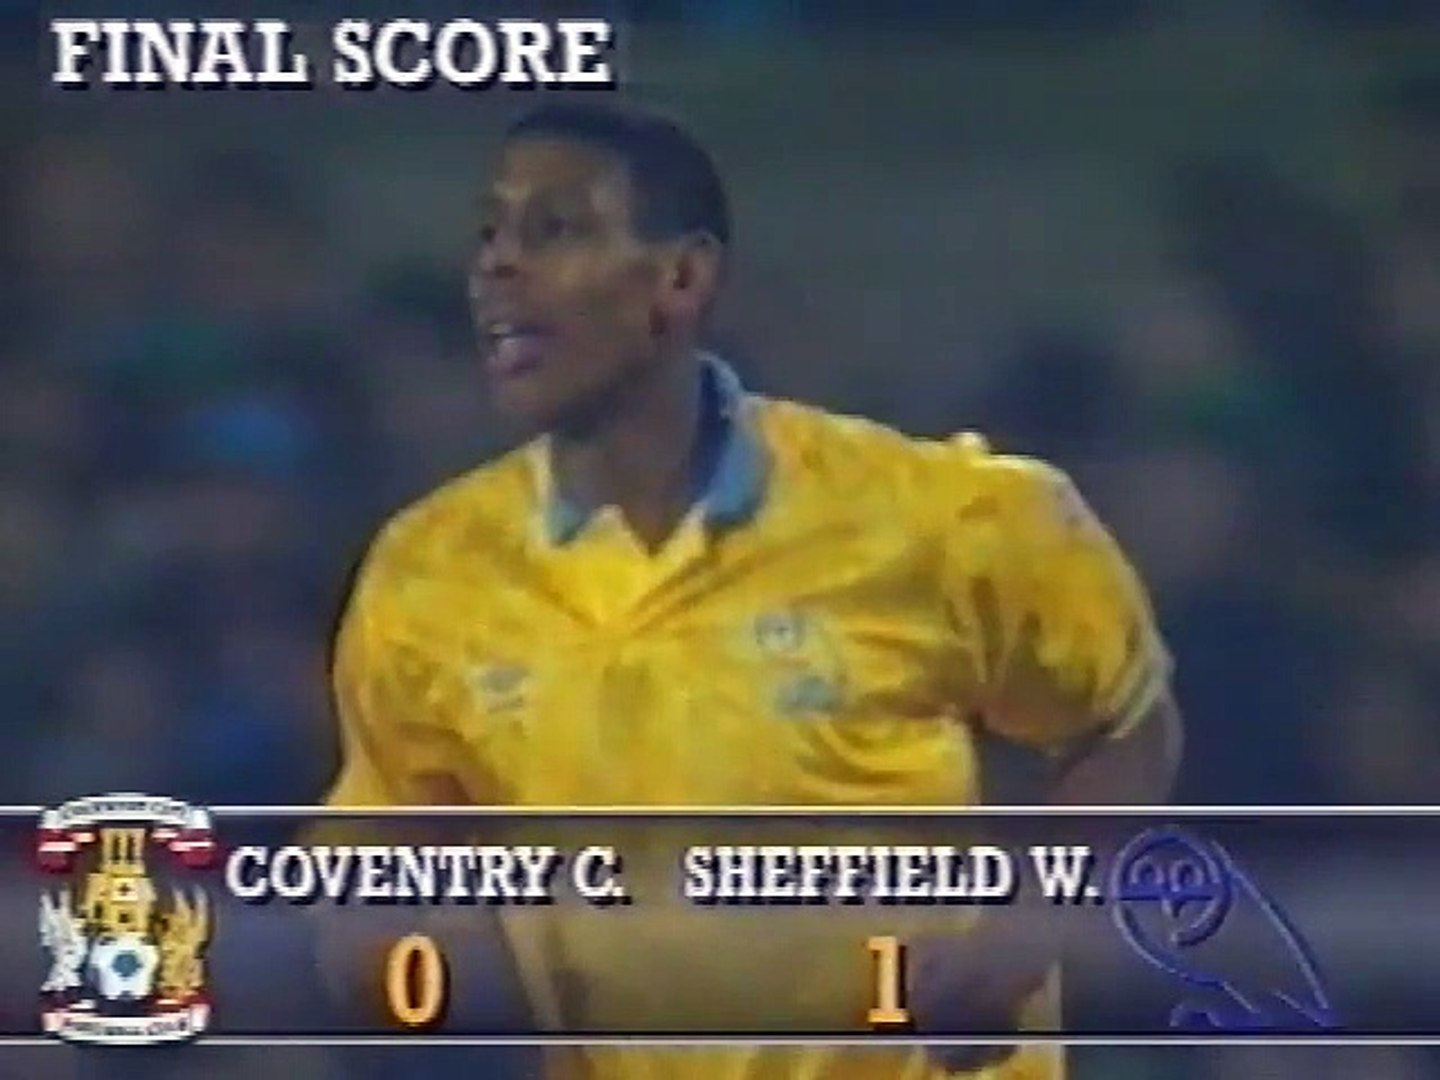 Coventry City 1990-91 Season Review  2of2